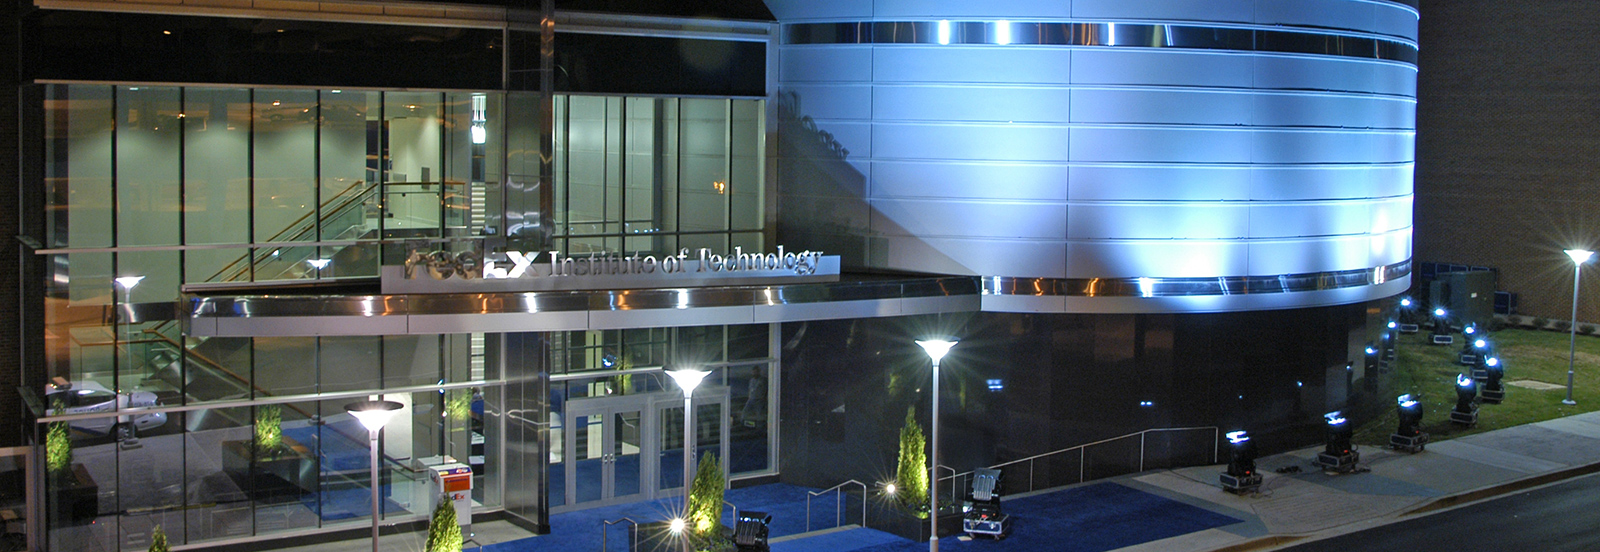 FedEx Institute of Technology building lighting at night